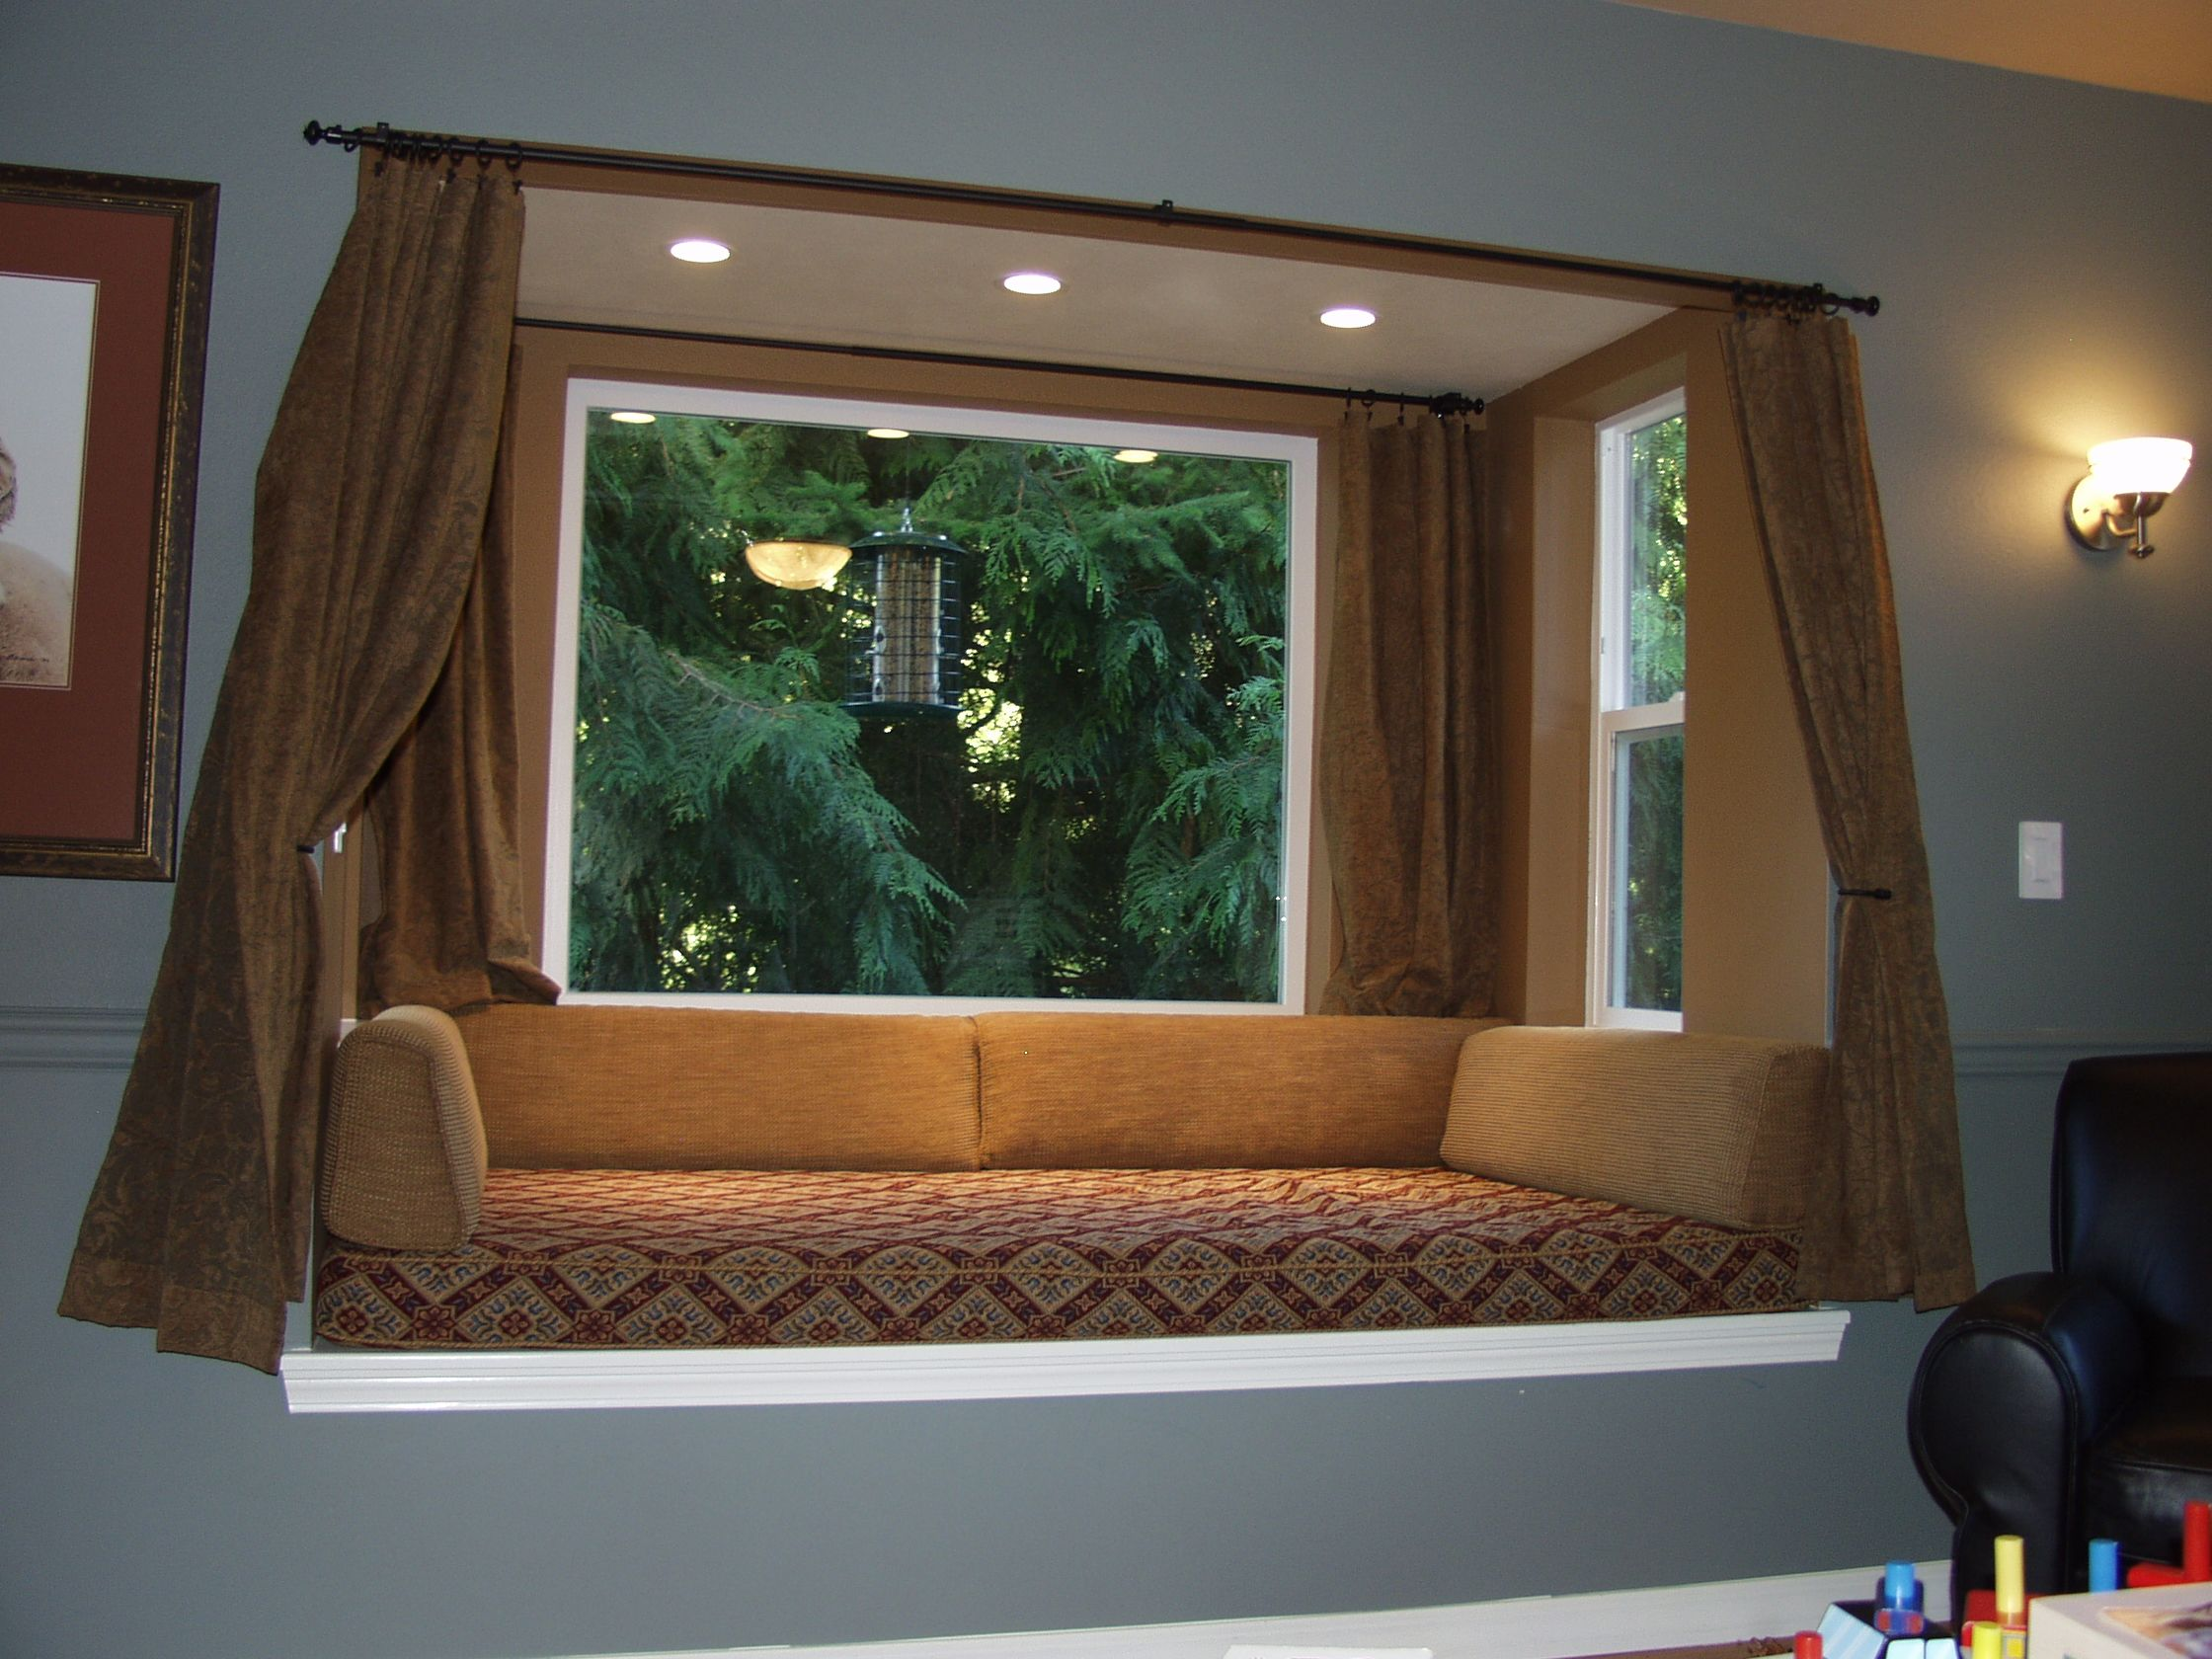 Wayne R Keffer Construction Inc Enhancing Your Home Window Seat Design Bay Window Living Room Bay Window Design